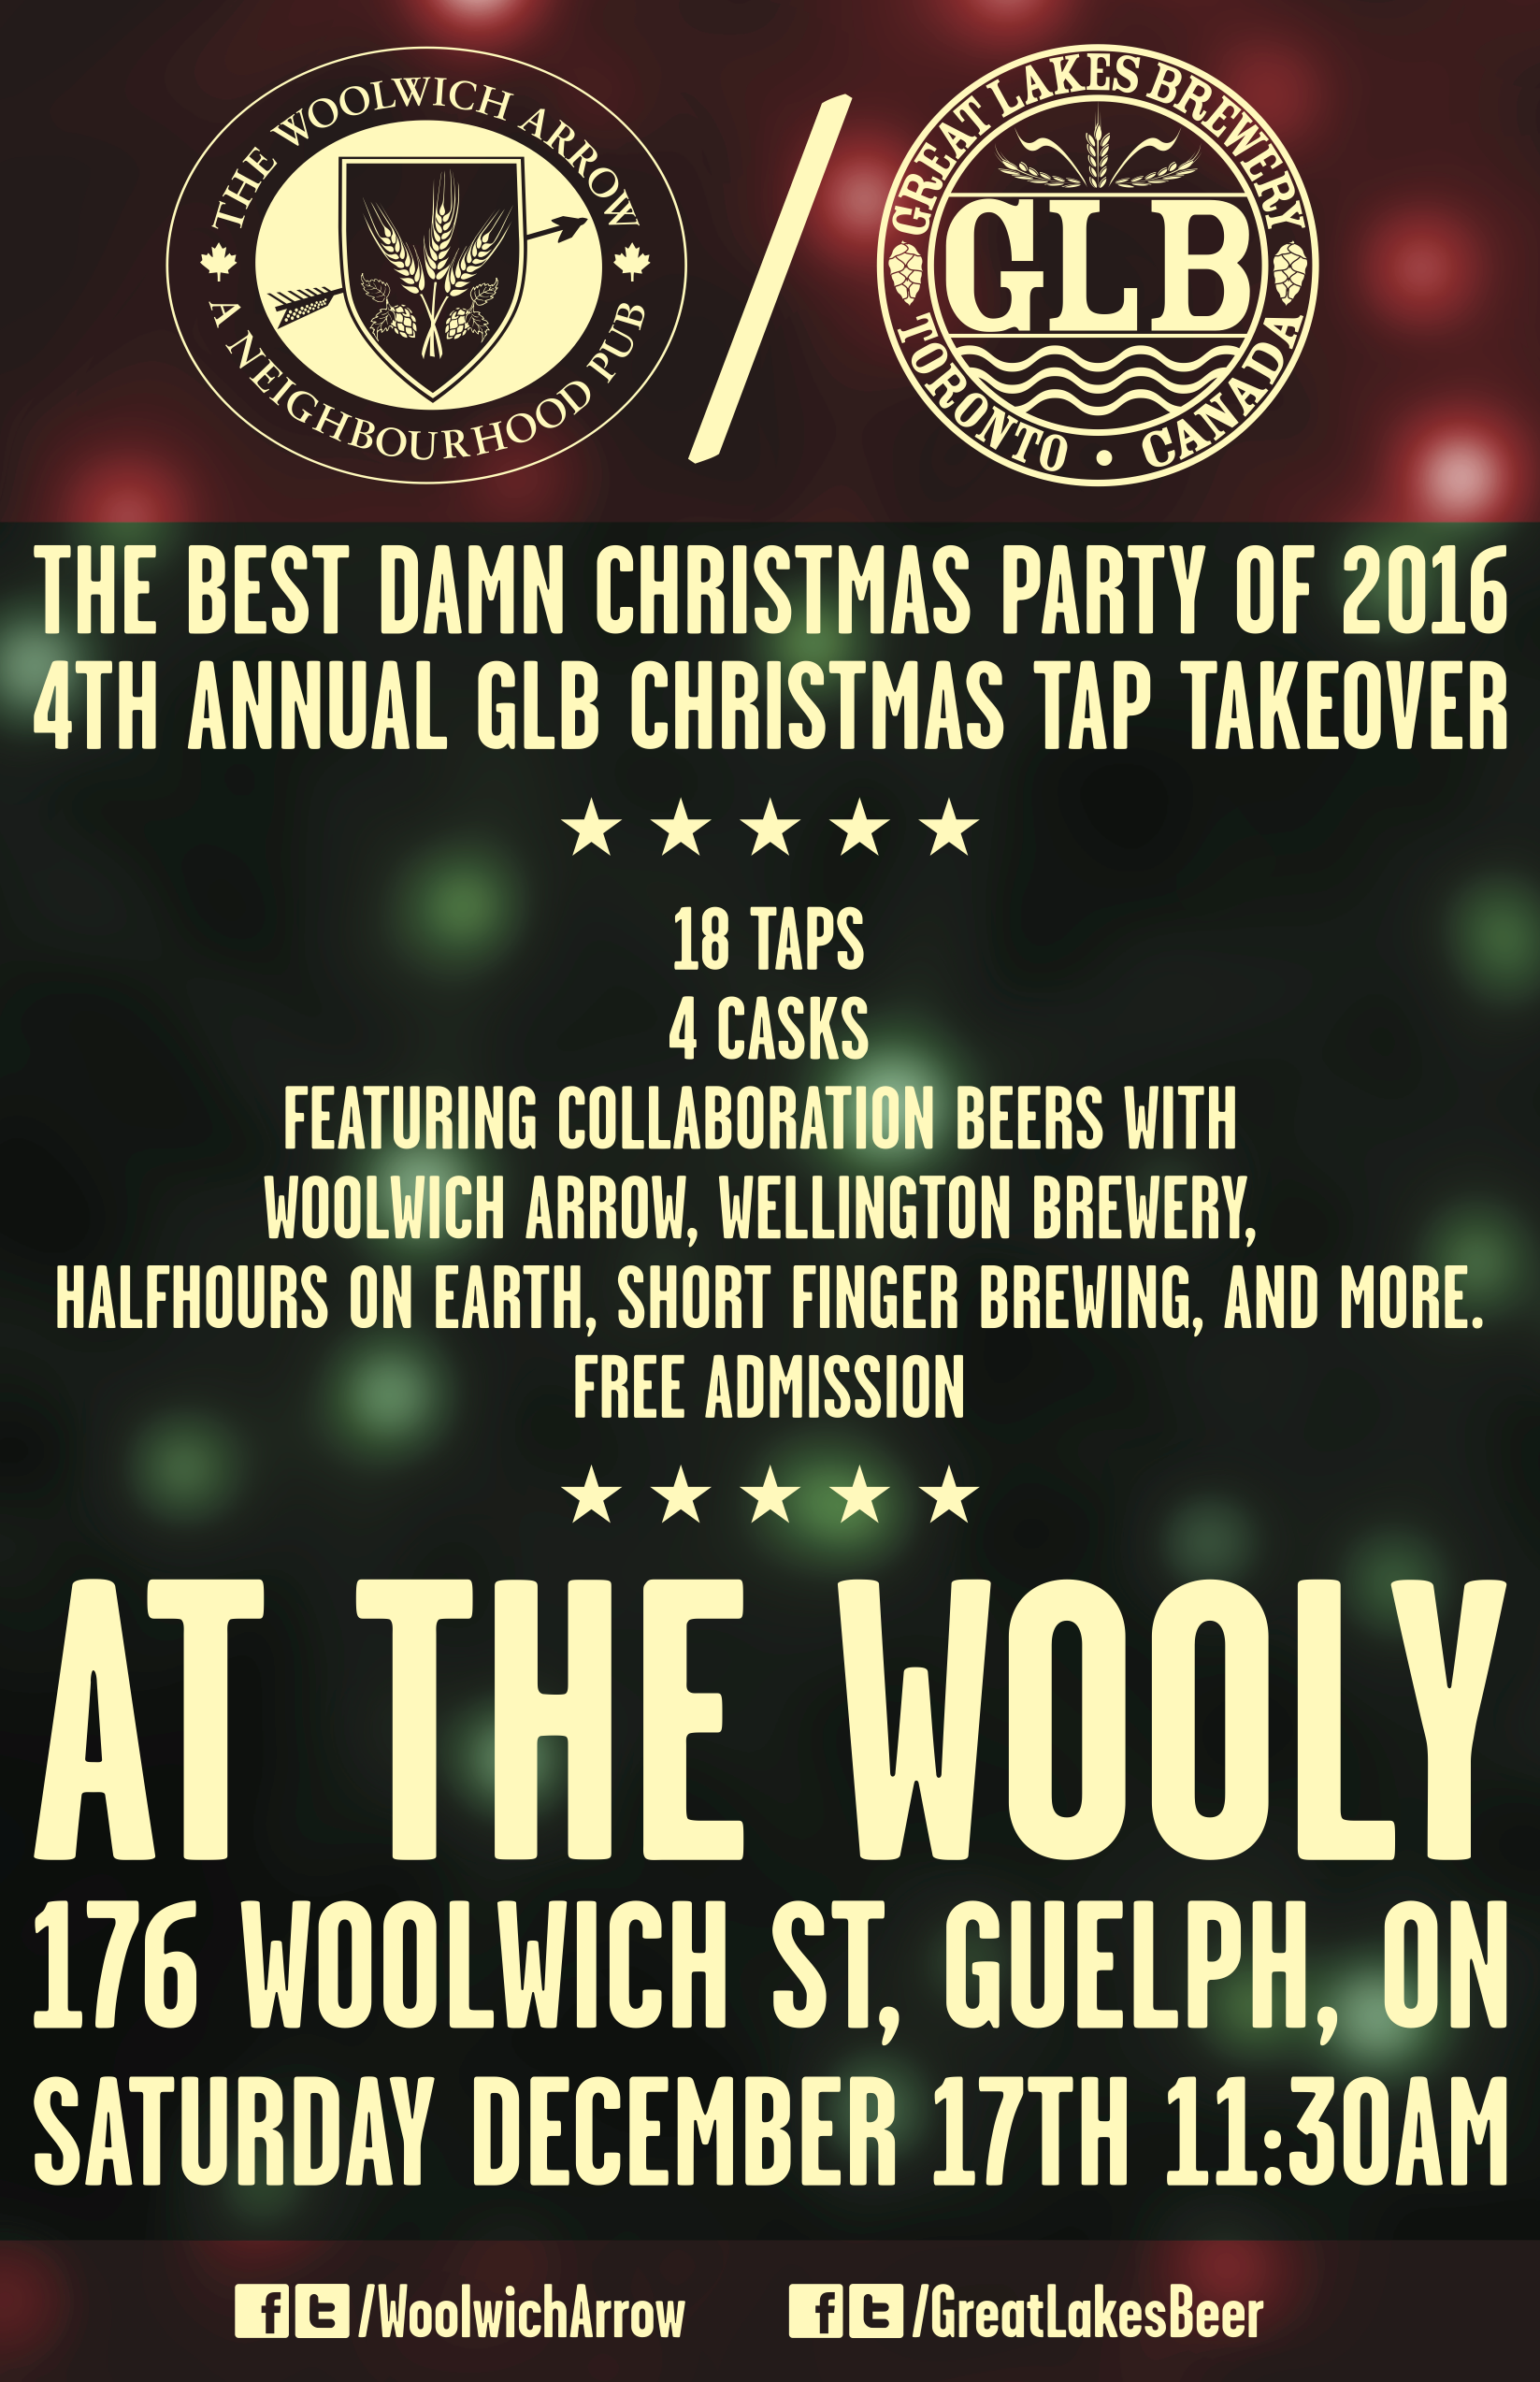 woolwich-arrow-christmas-takeover